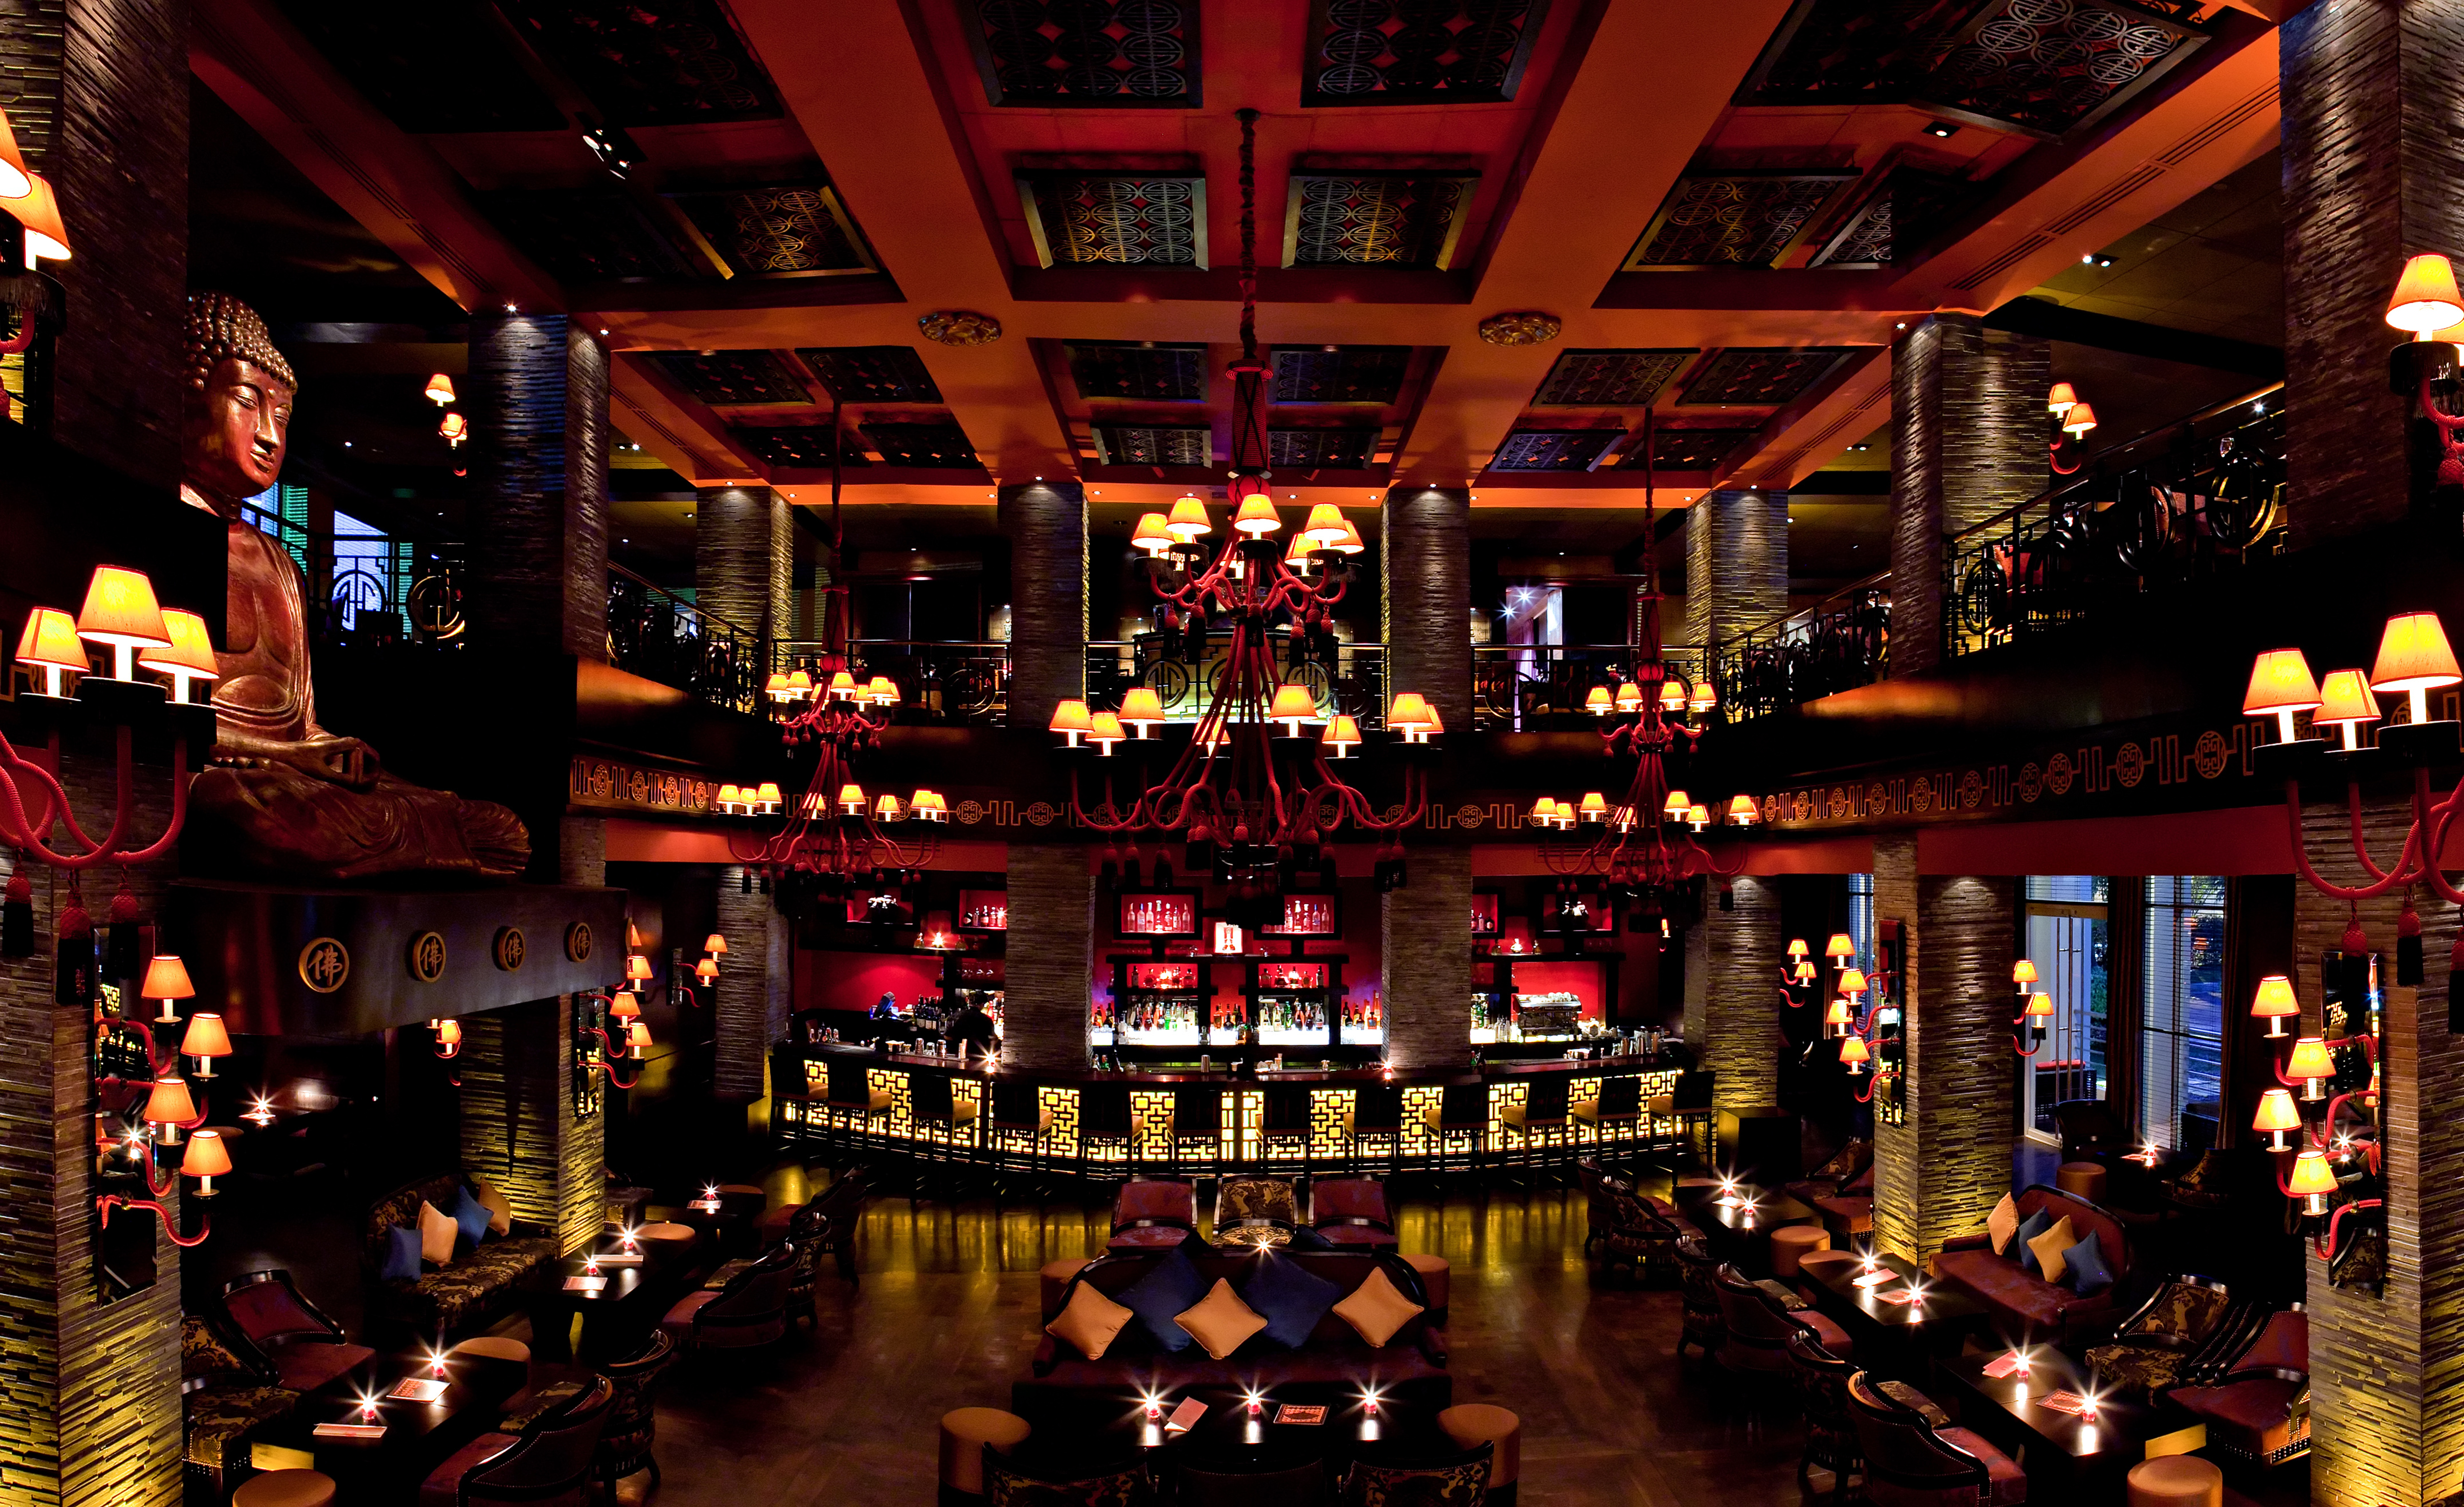 3 Course Meal At Buddha Bar For Lunch For Only P790 Net